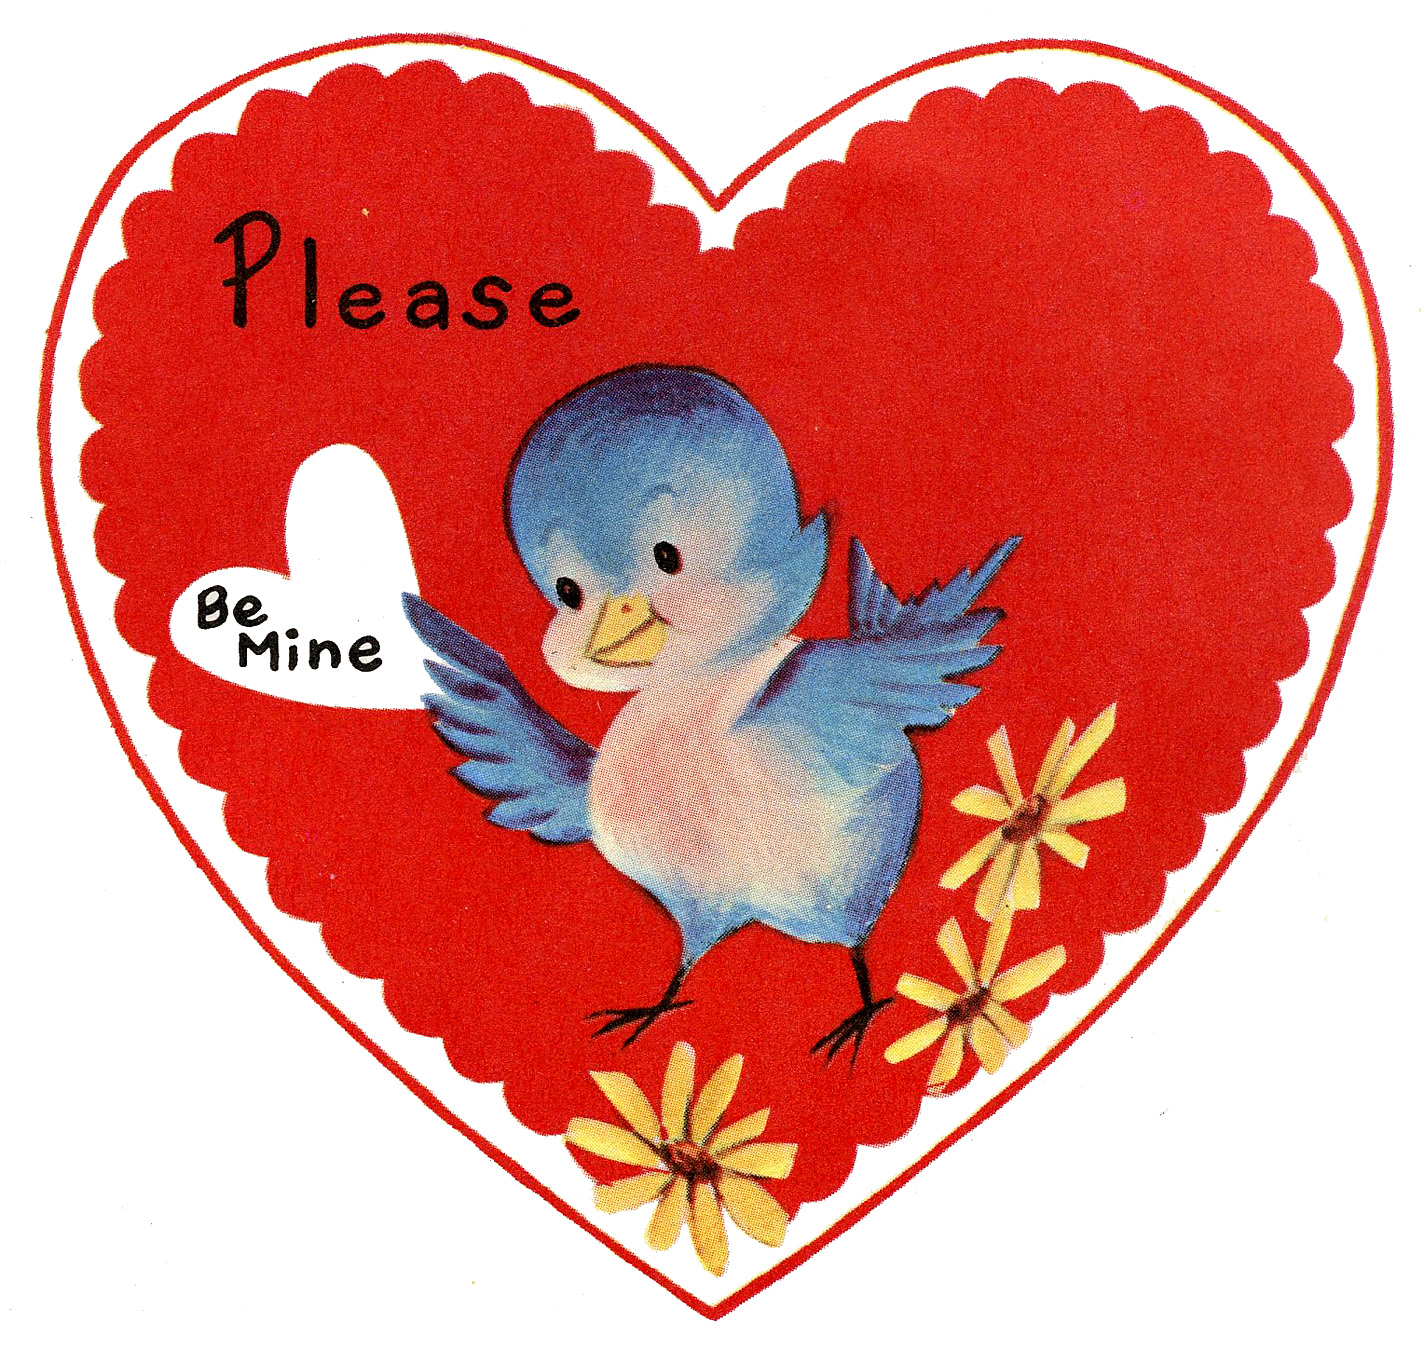 Retro Valentine Image  Cute Lil Bluebird  The Graphics Fairy